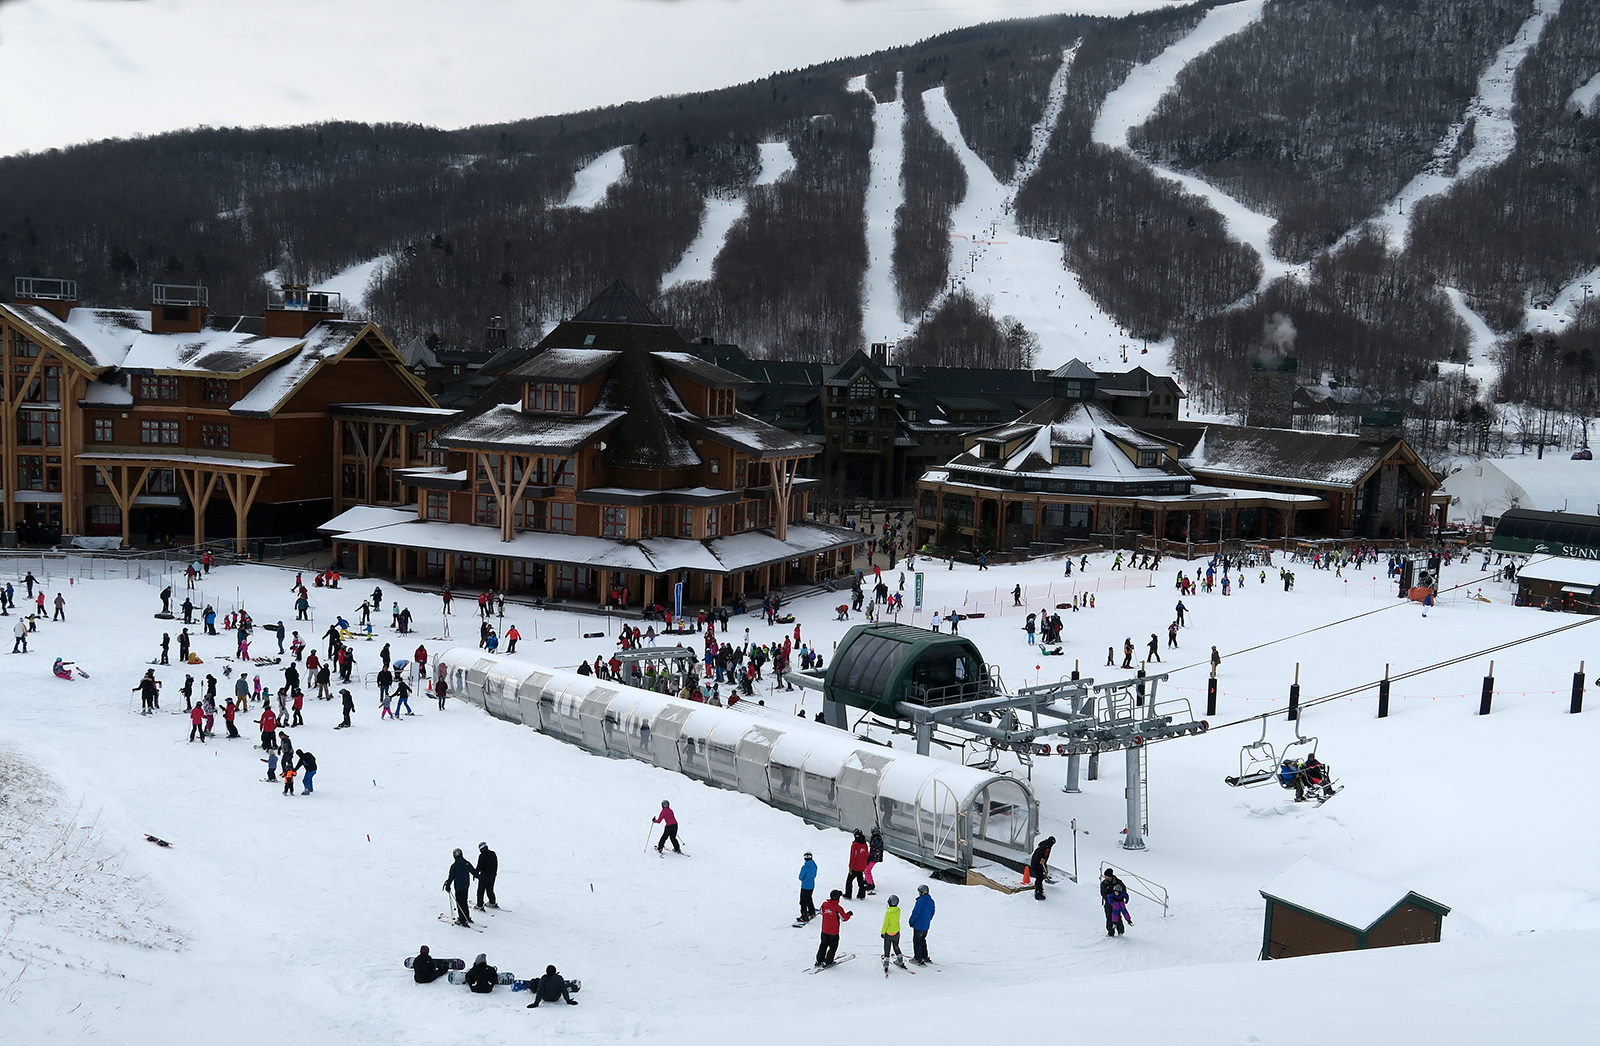 spruce development puts stowe in world class category   first tracks